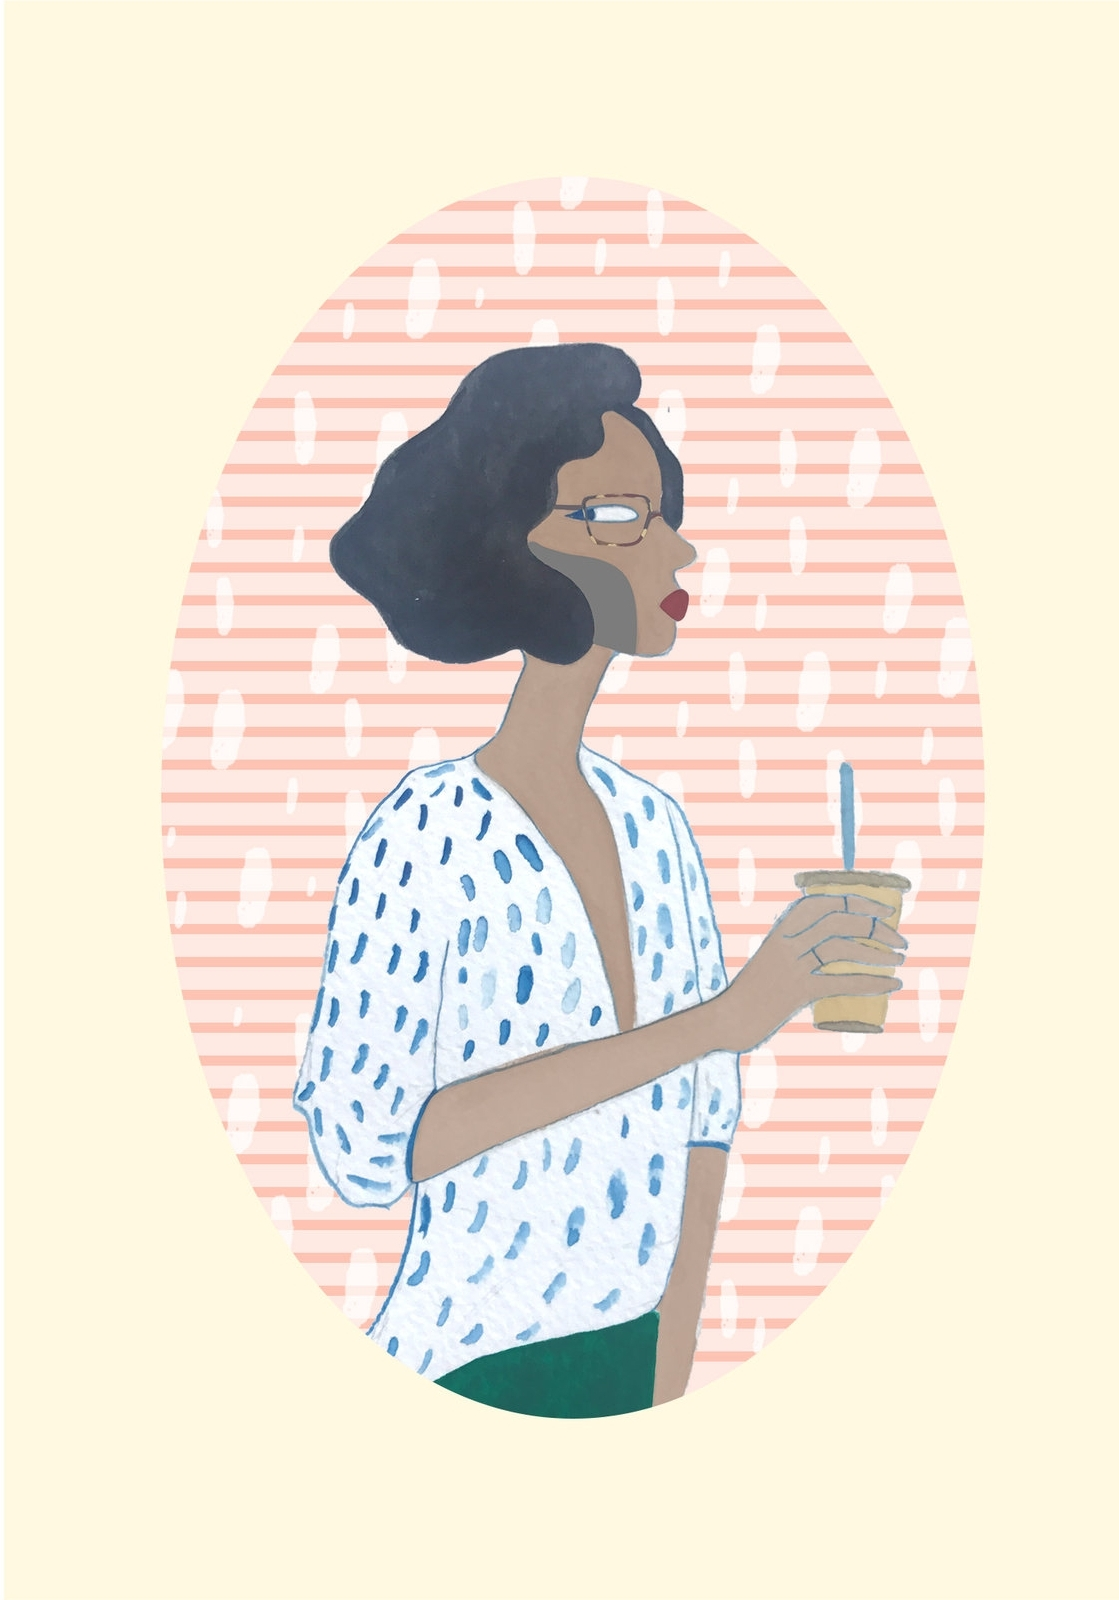 Portrait of a girl in tortoise shell glasses and iced latte. Brooklyn miniatures. Ongoing illustrated series of regular people, inspired by Deccan miniature portraits of nobles